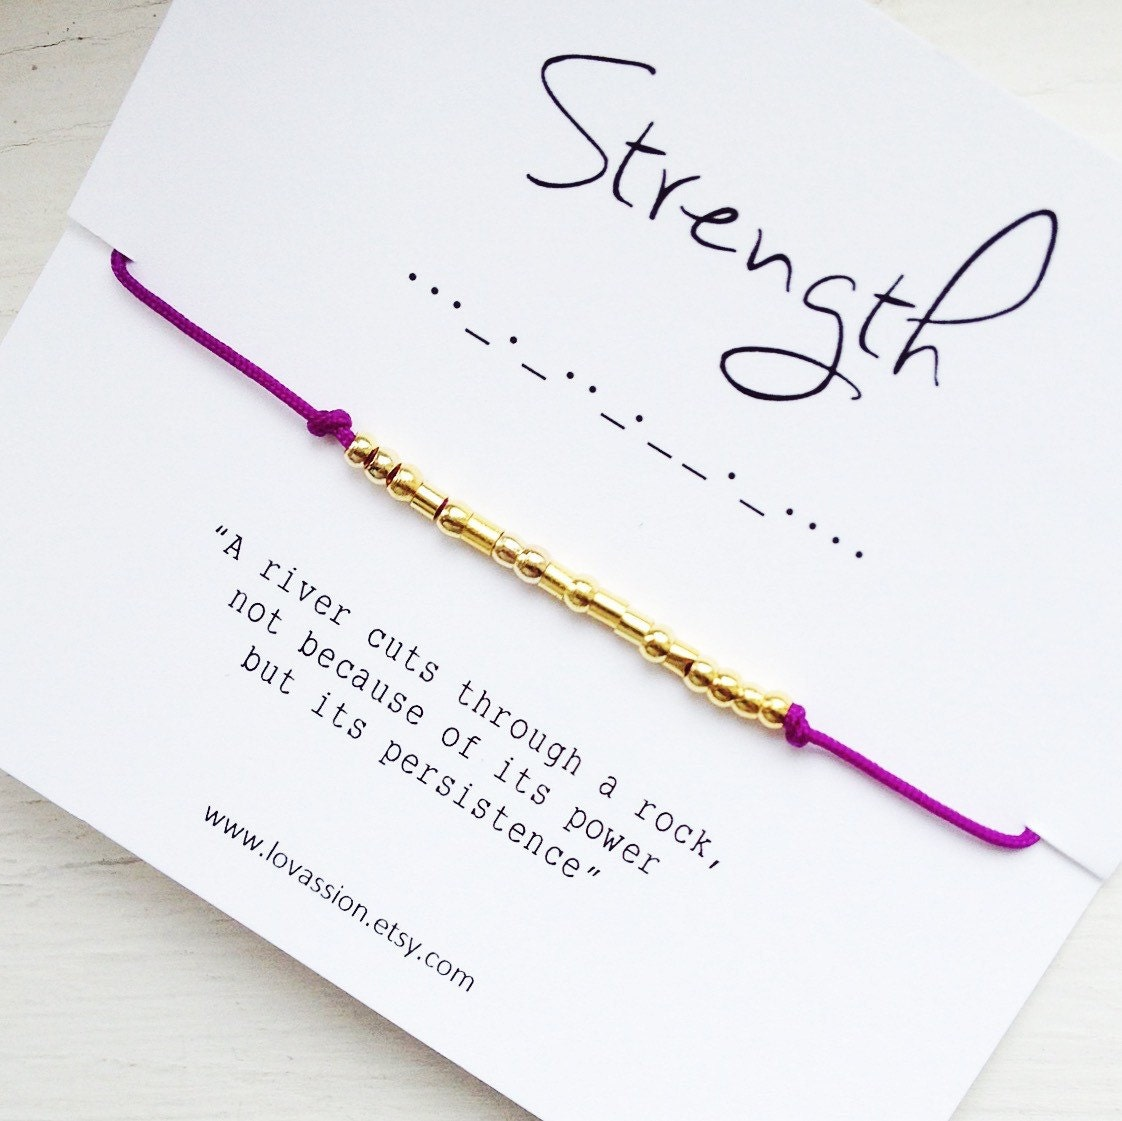 Persistence Motivational Quotes: STRENGTH Morse Code Bracelet